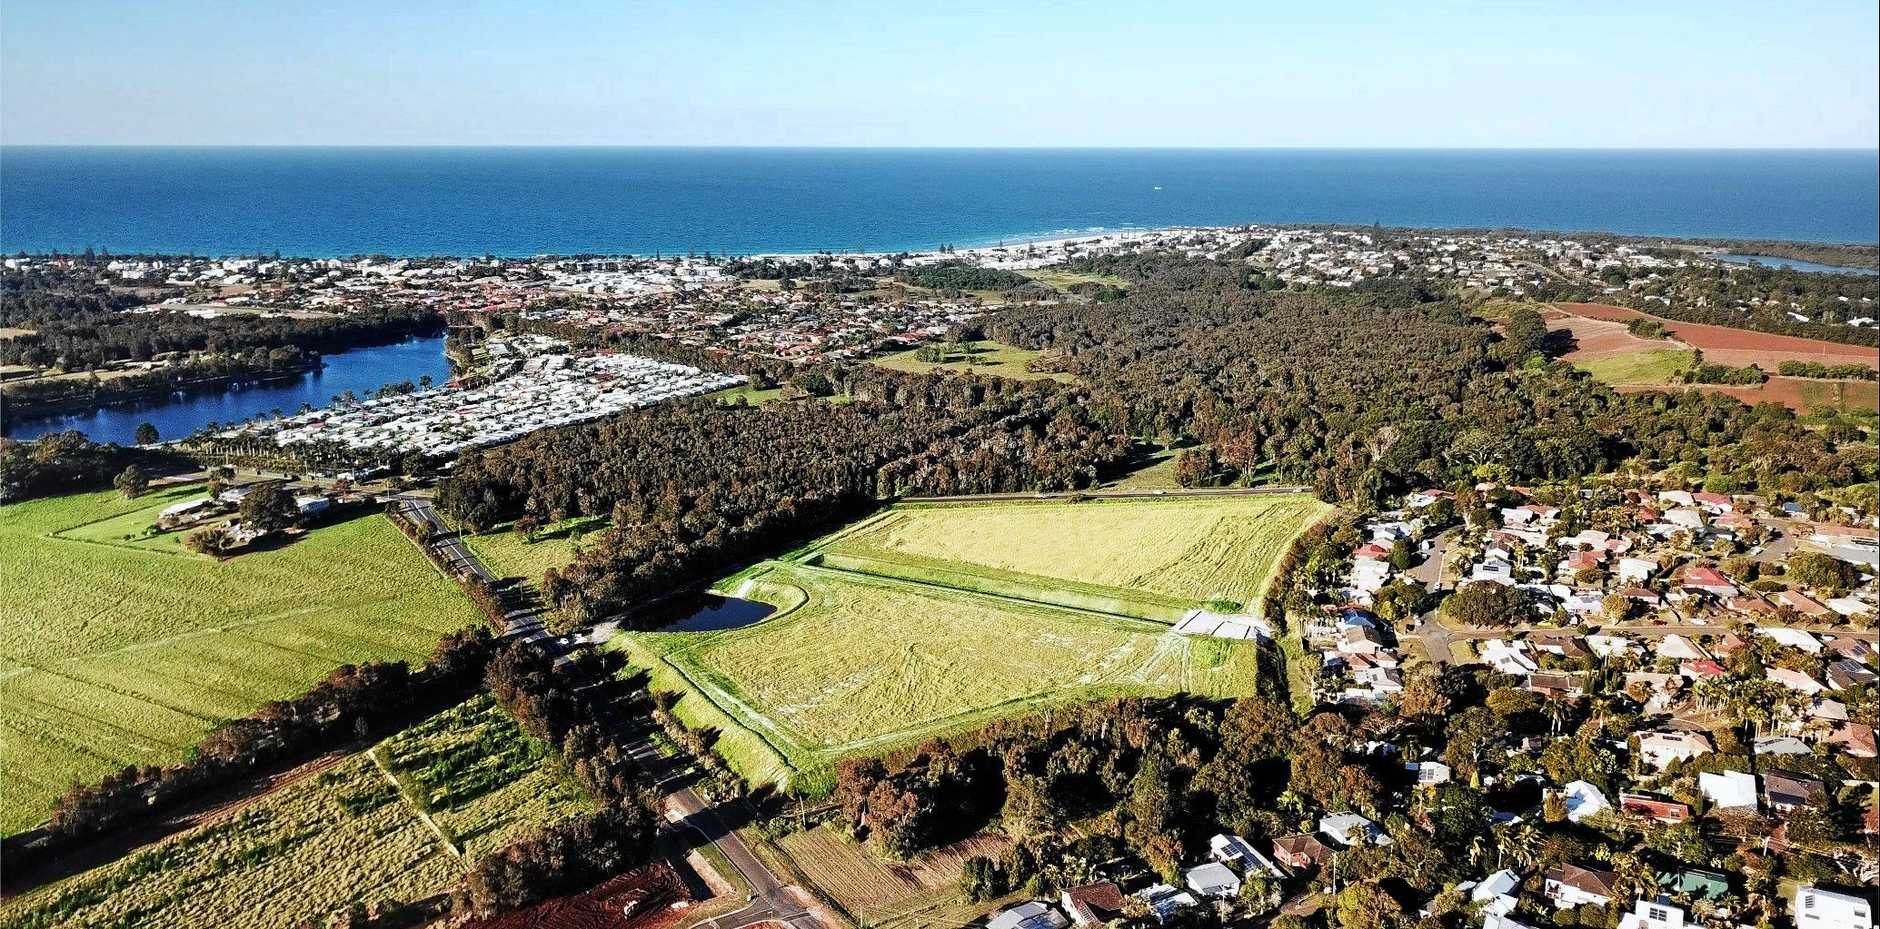 The new Kingscoast Estate with the Tweed Valley Hospital site in the top right corner.